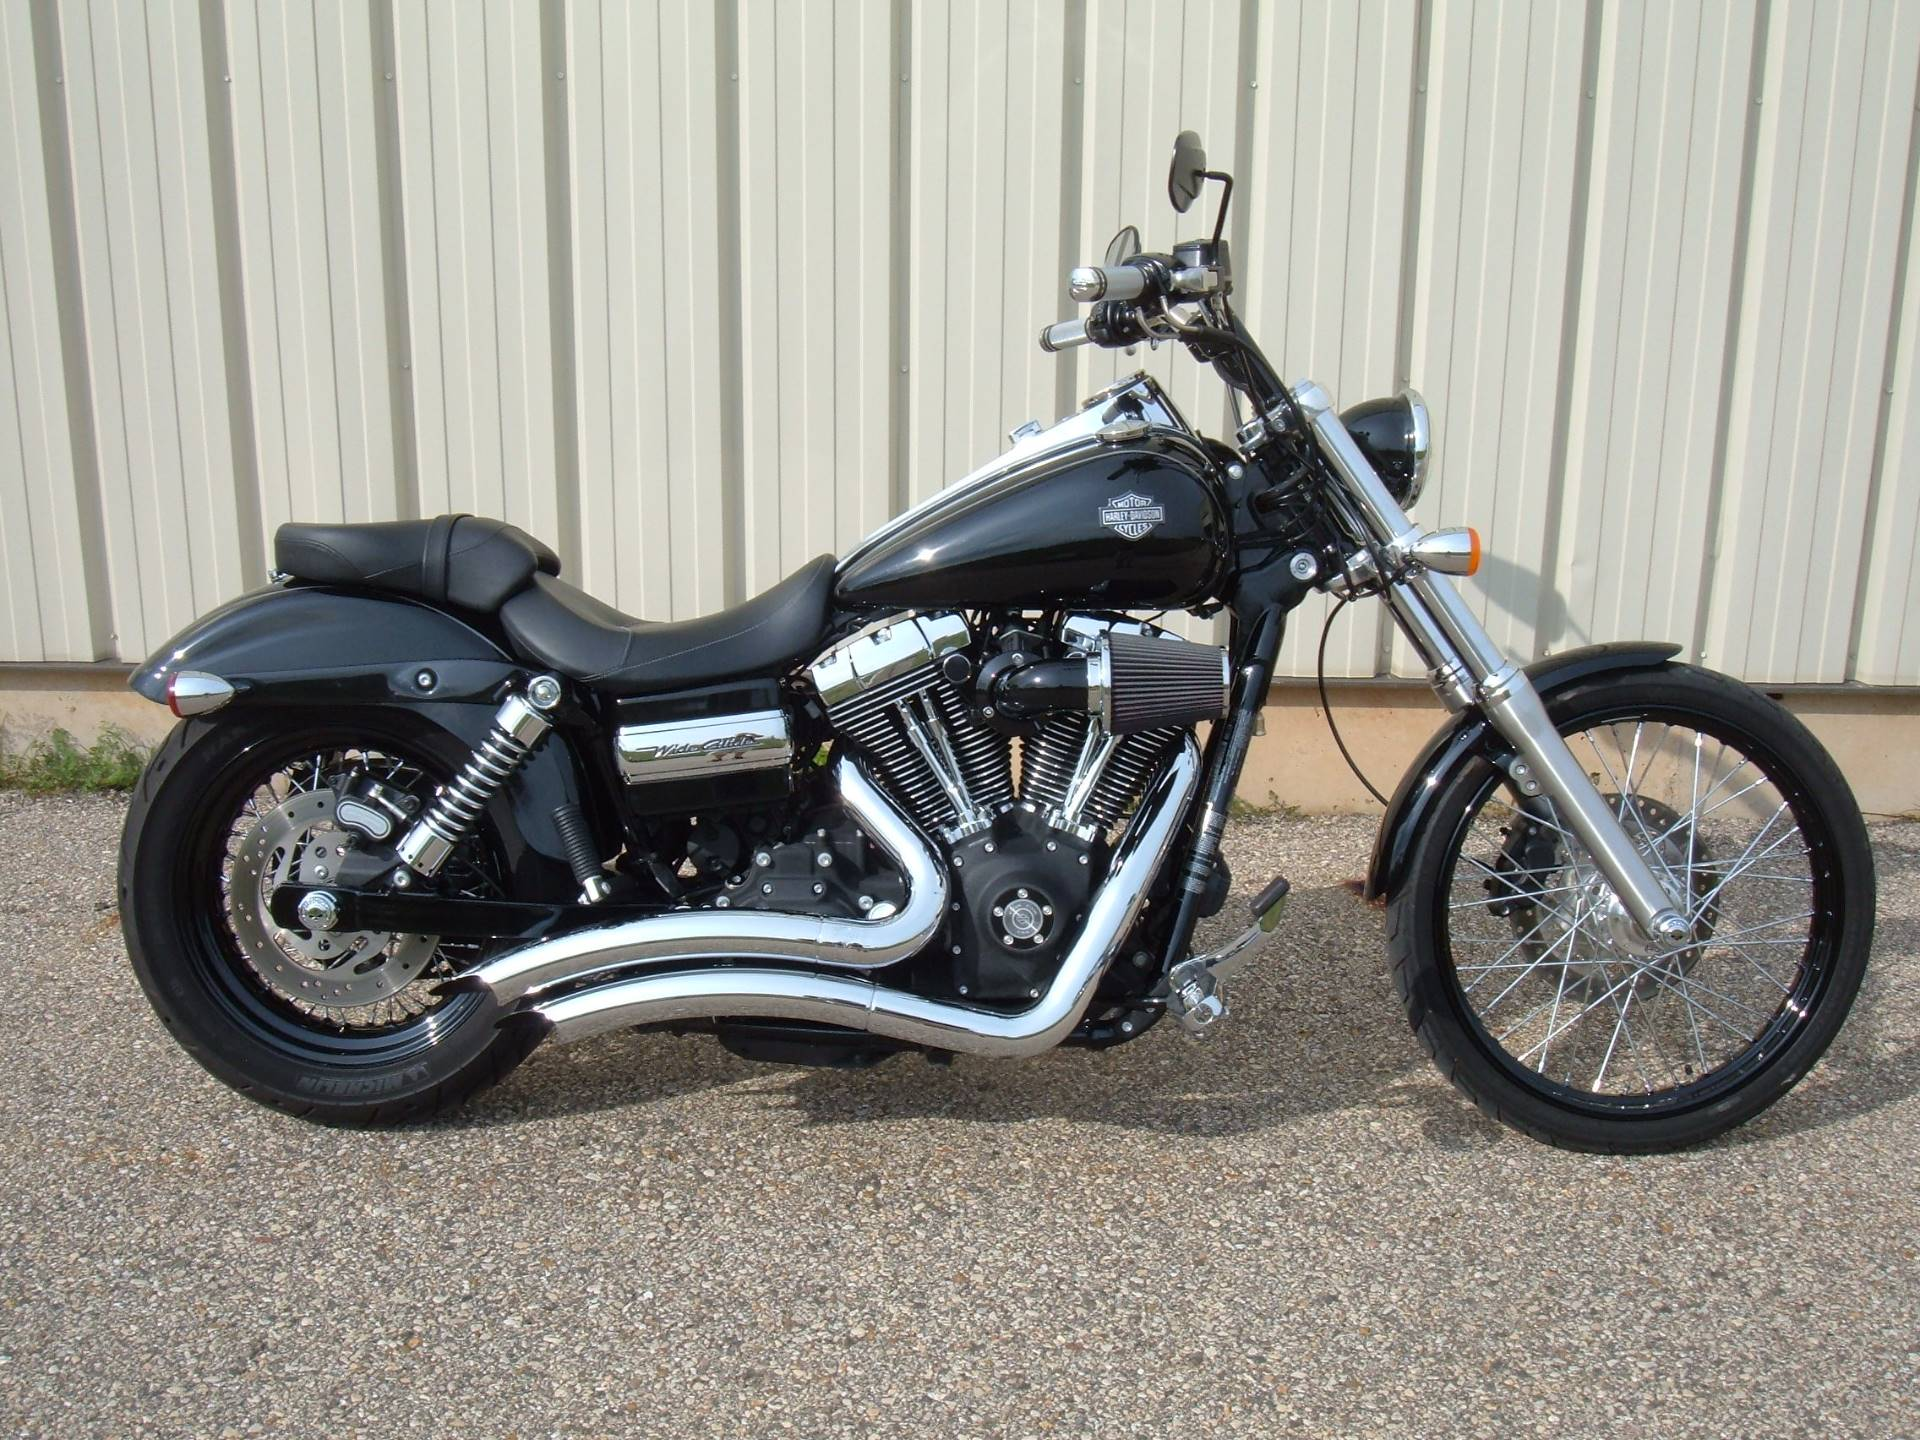 Used 2011 Harley Davidson Dyna 174 Wide Glide 174 Motorcycles In Verona Wi Stock Number N A